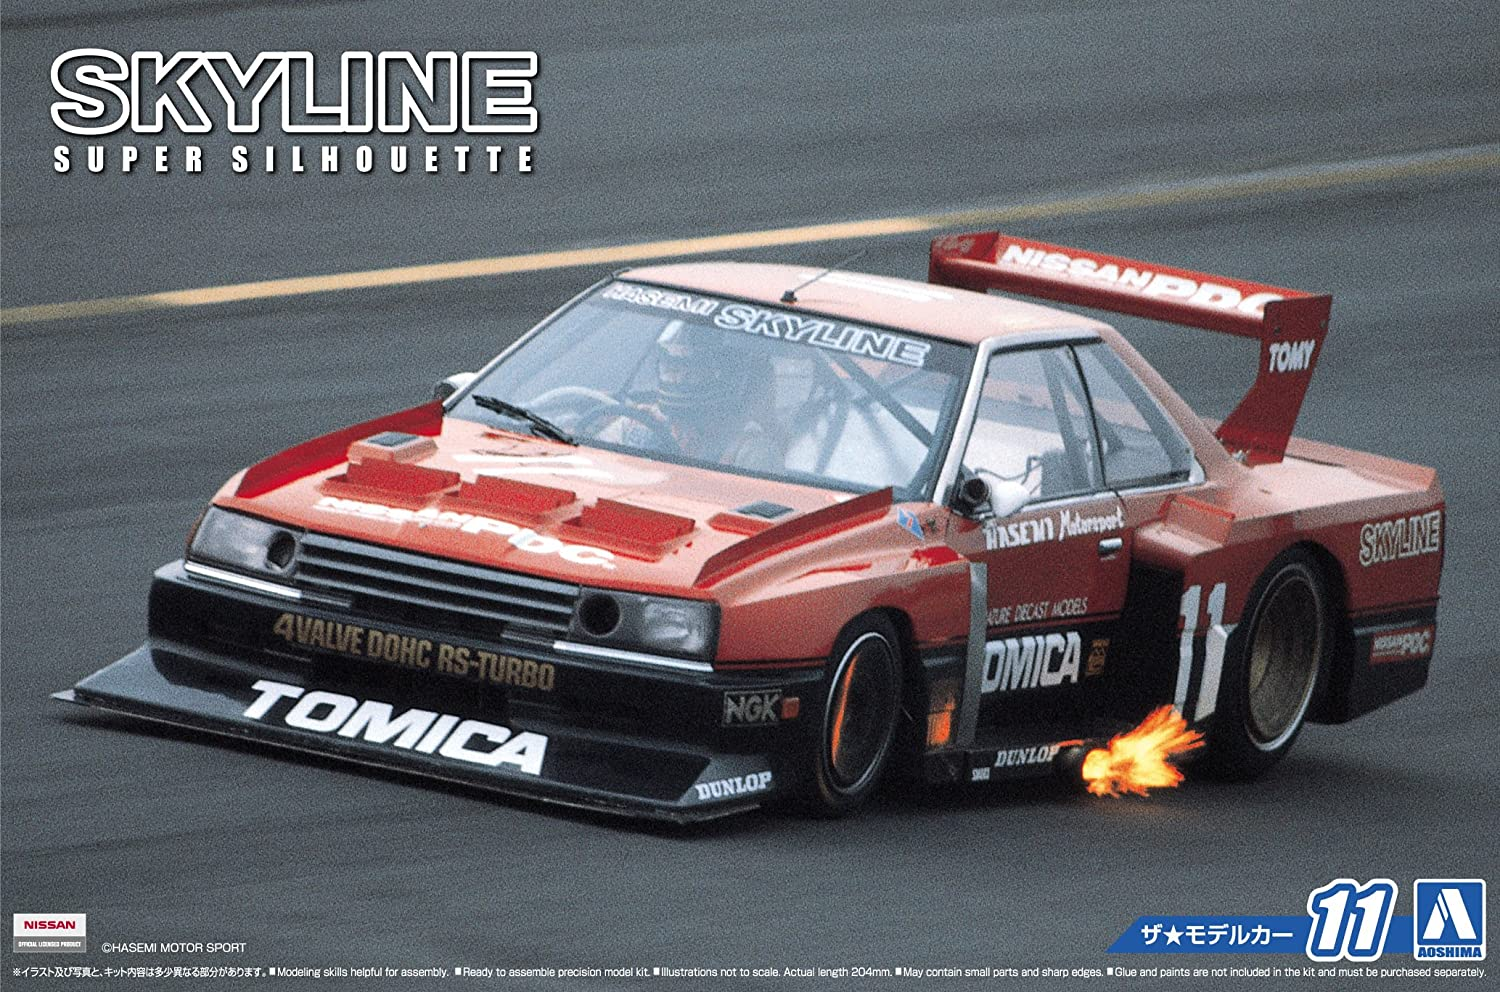 Amazon.com: 1/24 the cars Nissan KDR30 skyline Super silhouette 82 model car: Toys & Games